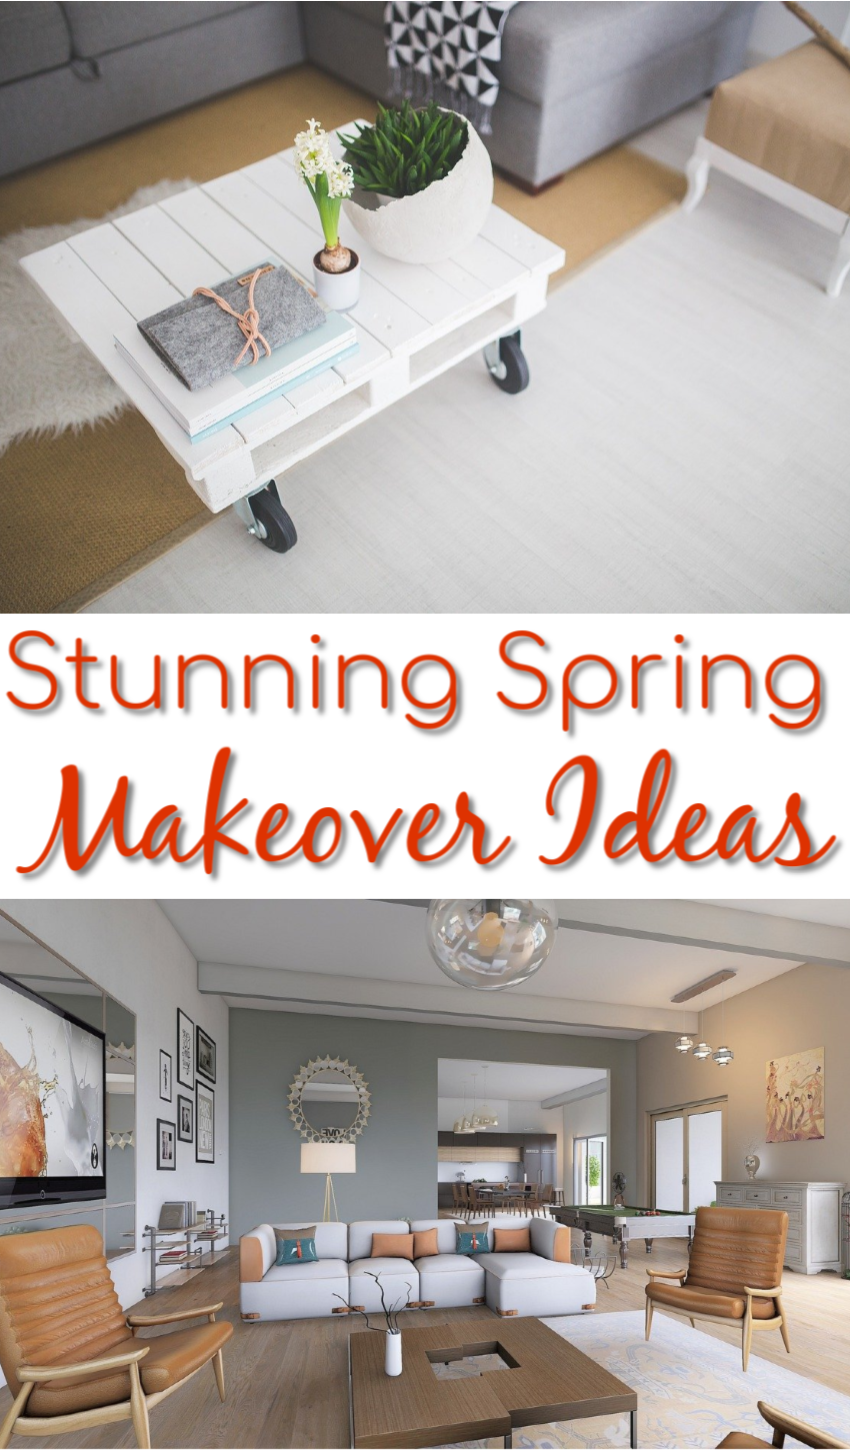 Freshen Up Your Interiors: Ideas For A Stunning Spring Makeover